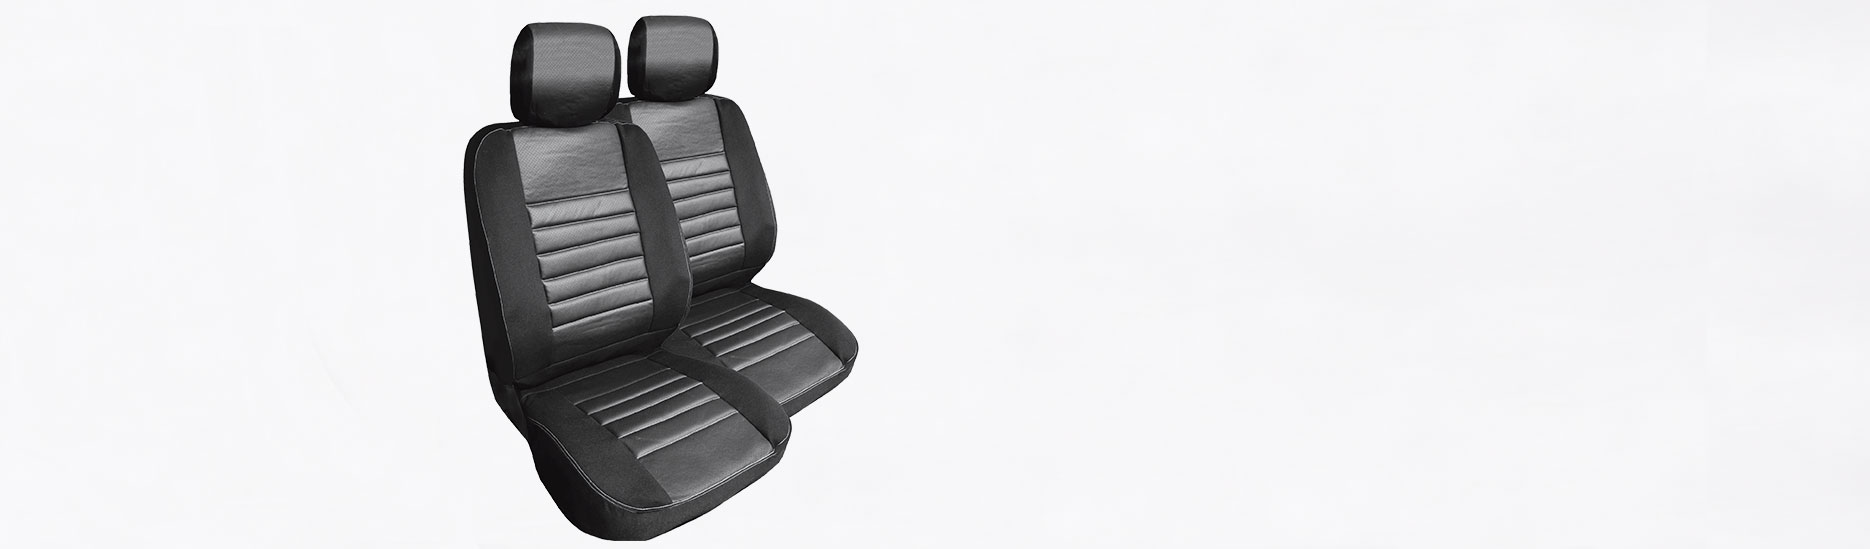 Black Car Seat Covers Rev